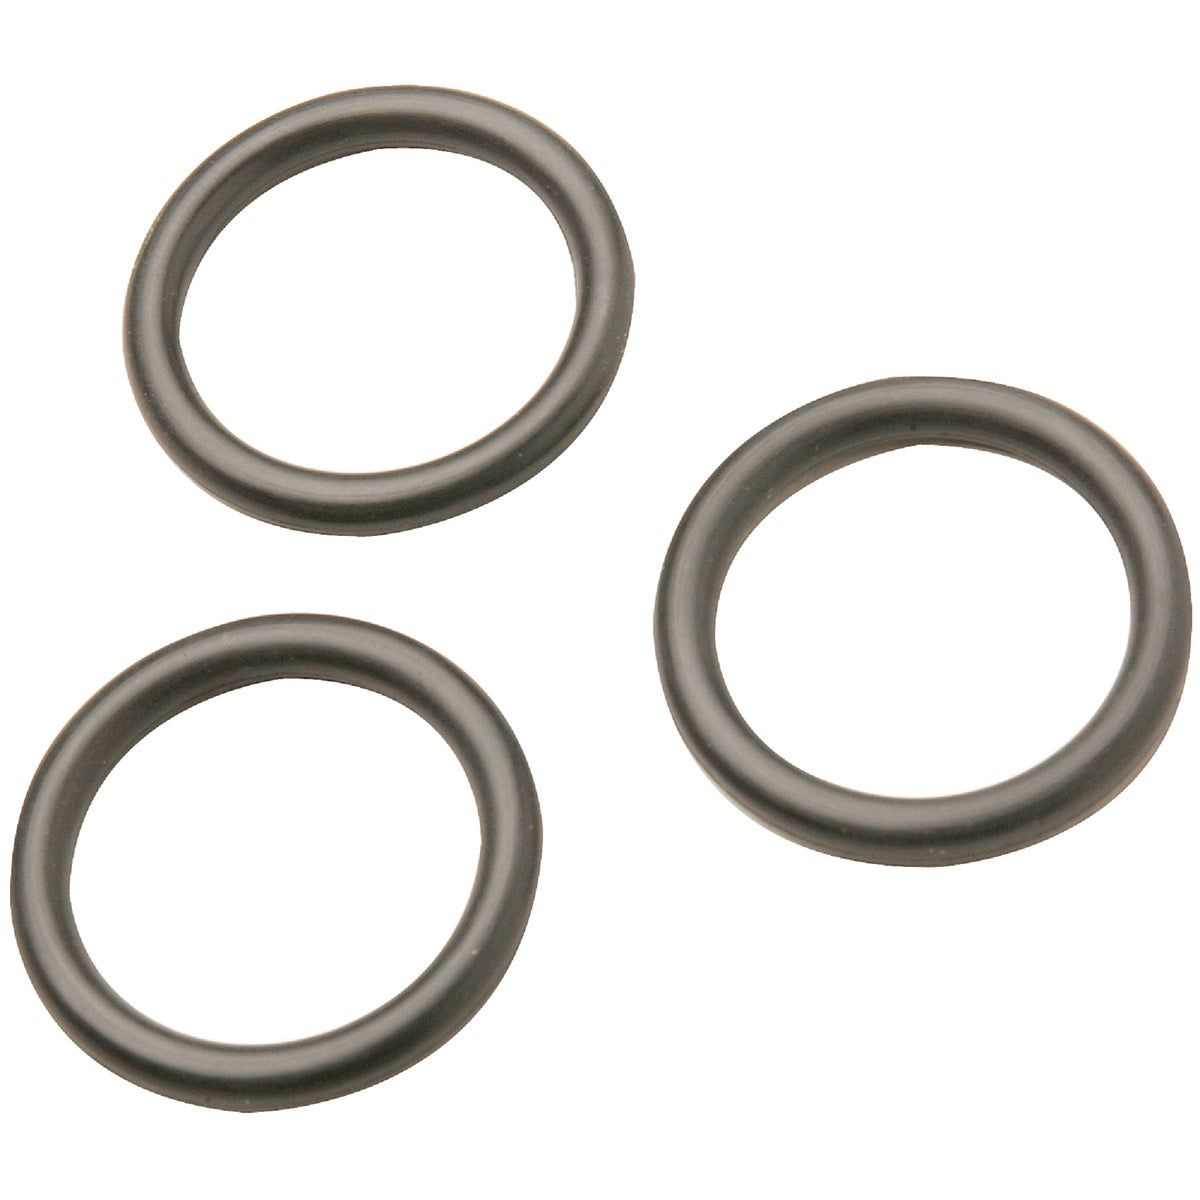 2-HANDLE FAUCET SEALS - 405329 by Plumb Pak/keeney Mfg